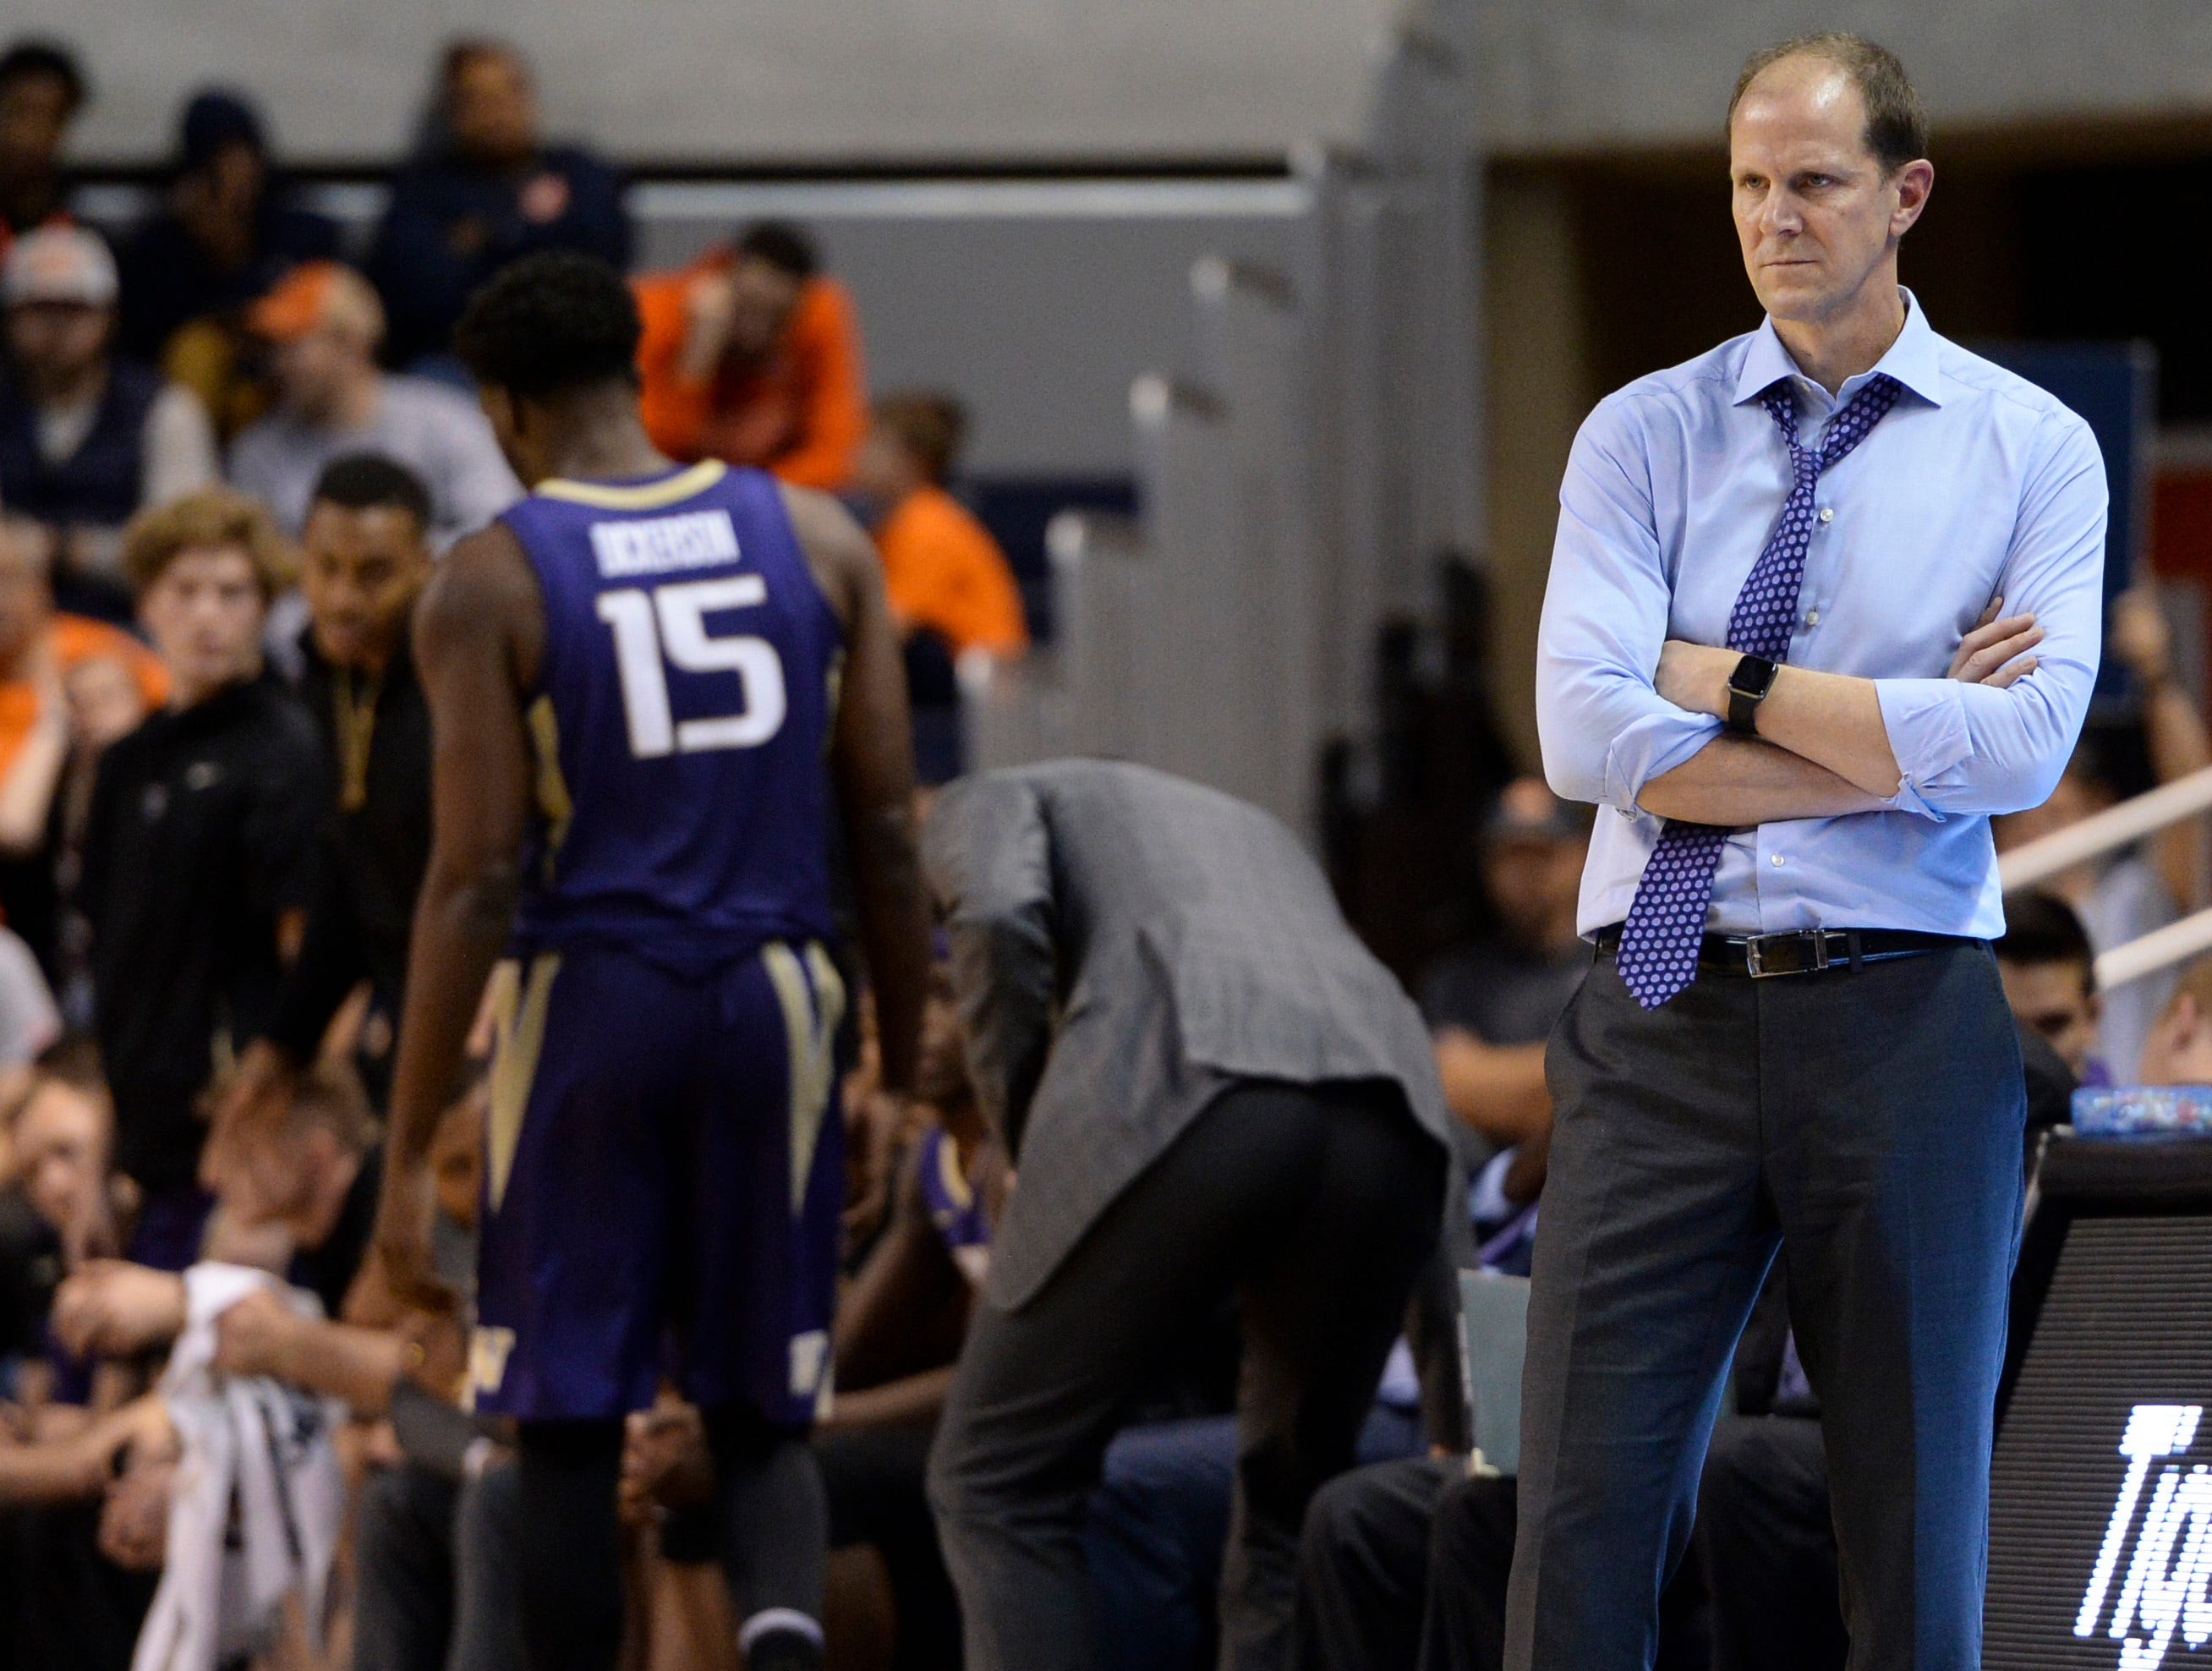 Nov 9, 2018; Auburn, AL, USA; Washington Huskies head coach Mike Hopkins watches the second half of play against the Auburn Tigers at Auburn Arena. Mandatory Credit: Julie Bennett-USA TODAY Sports